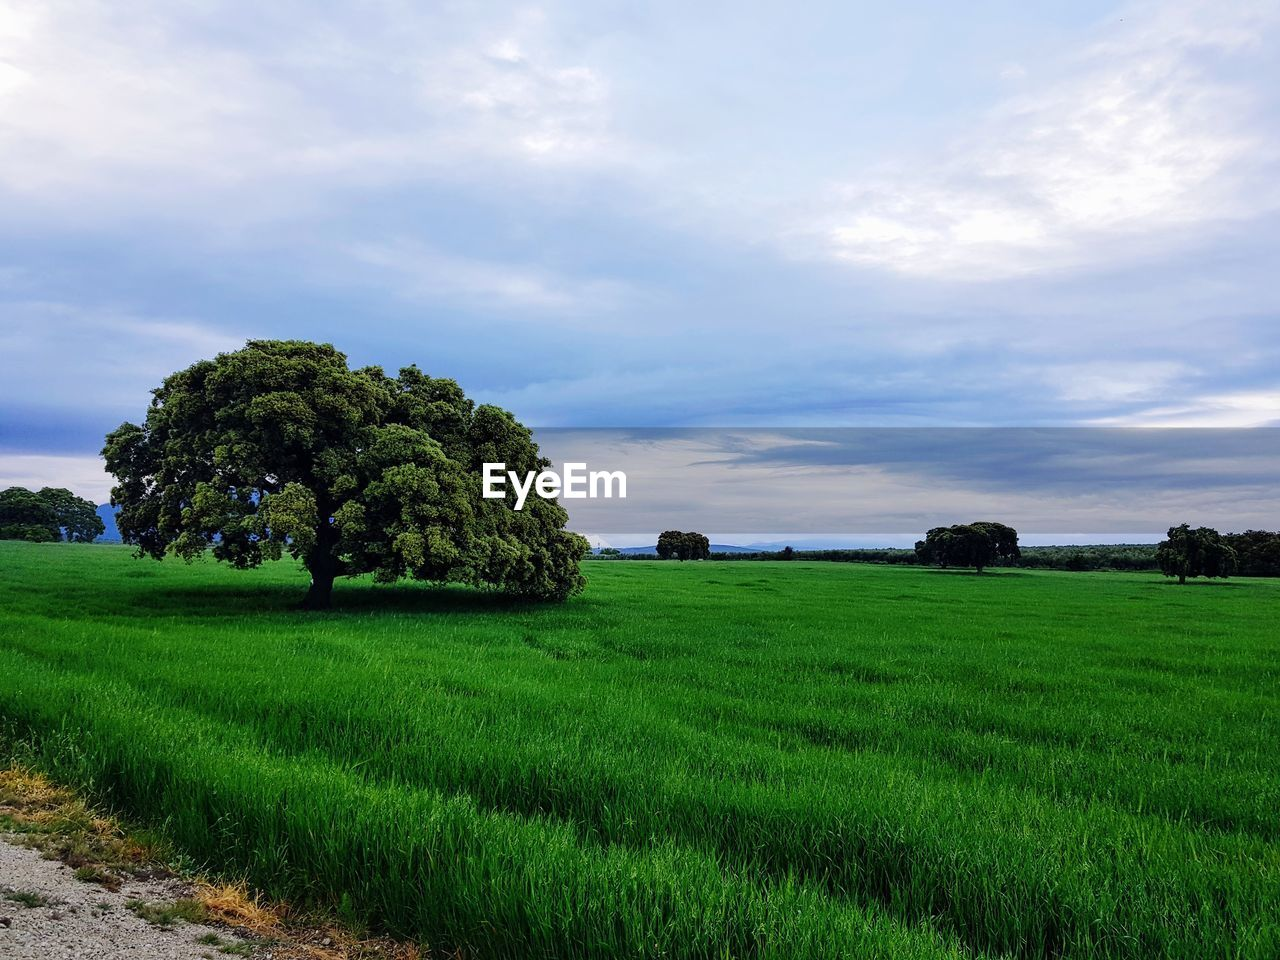 plant, cloud - sky, sky, green color, tranquil scene, landscape, beauty in nature, scenics - nature, land, environment, tranquility, field, growth, tree, grass, nature, agriculture, rural scene, no people, day